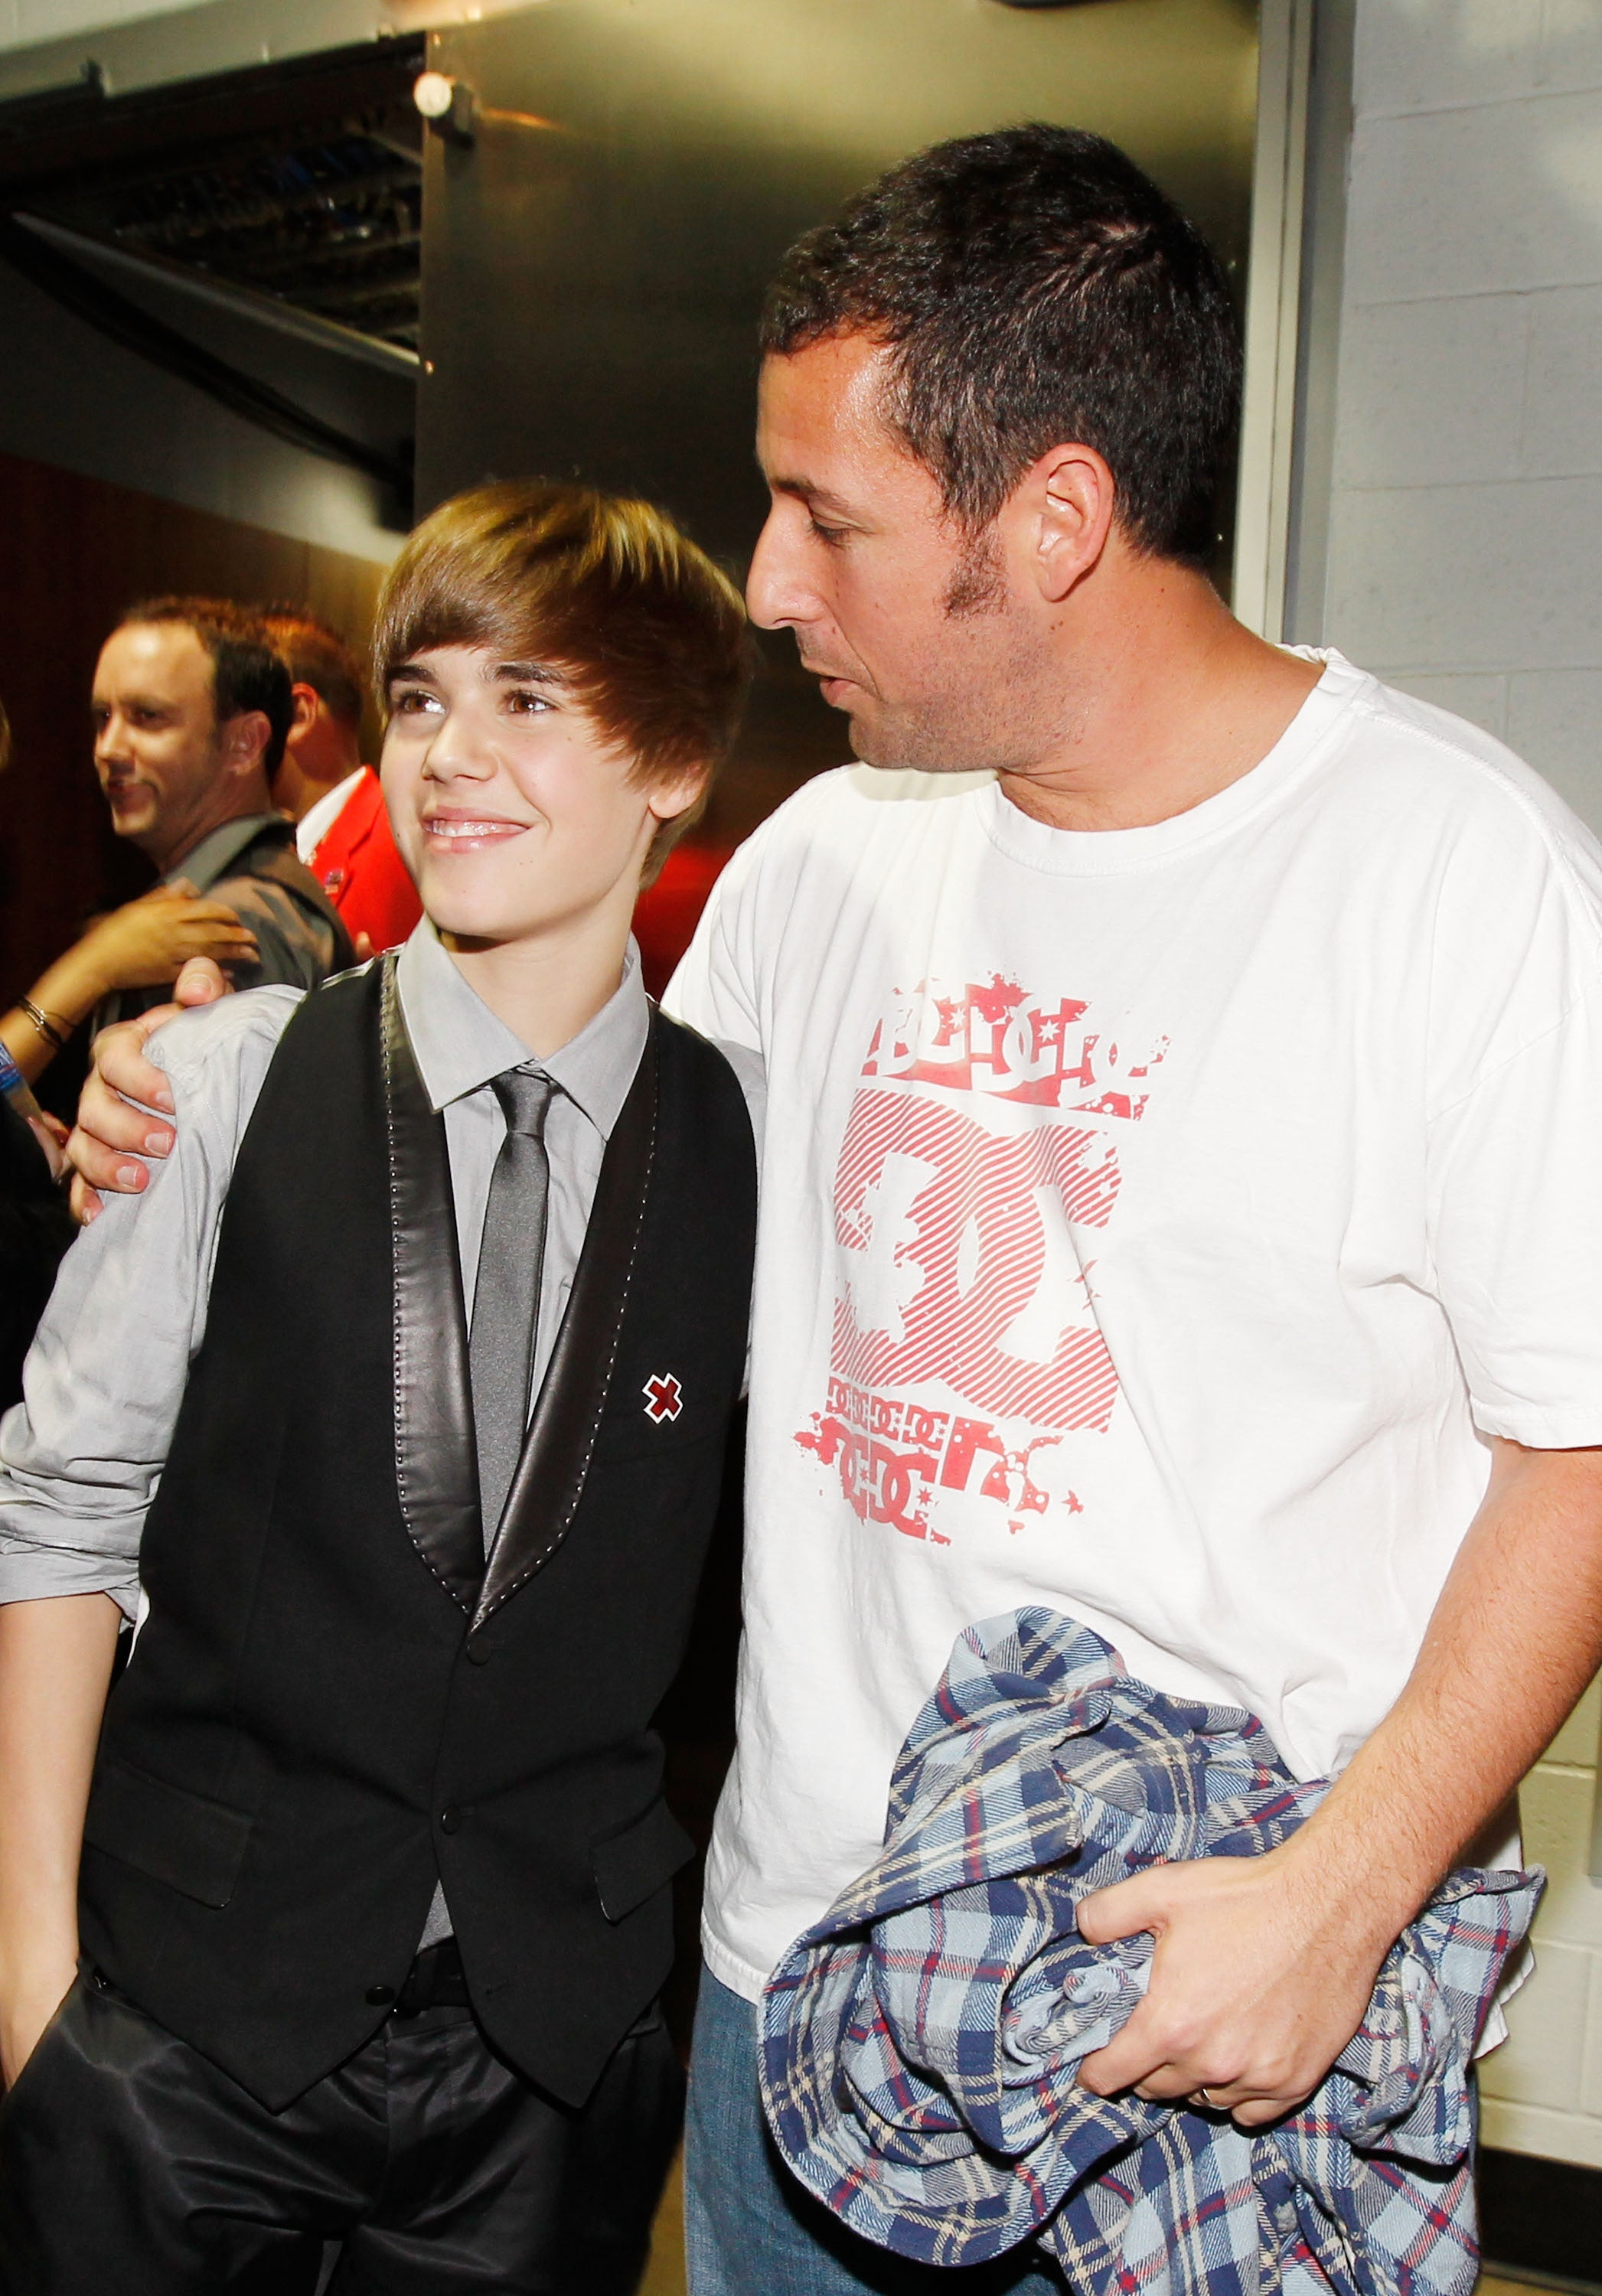 Adam sandler dishes on his dinner with justin bieber hes funny as adam sandler dishes on his dinner with justin bieber hes funny as hell exclusive entertainment tonight m4hsunfo